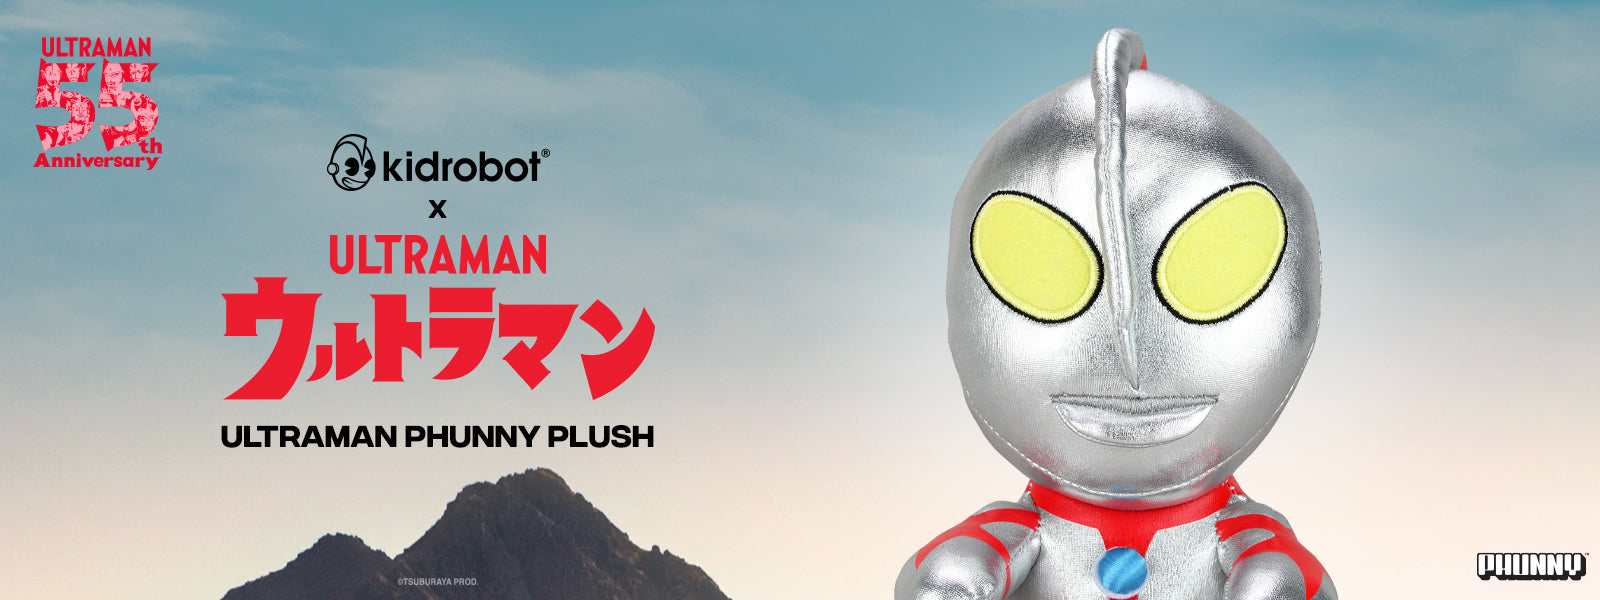 Marvel Ultraman Toys and Collectibles